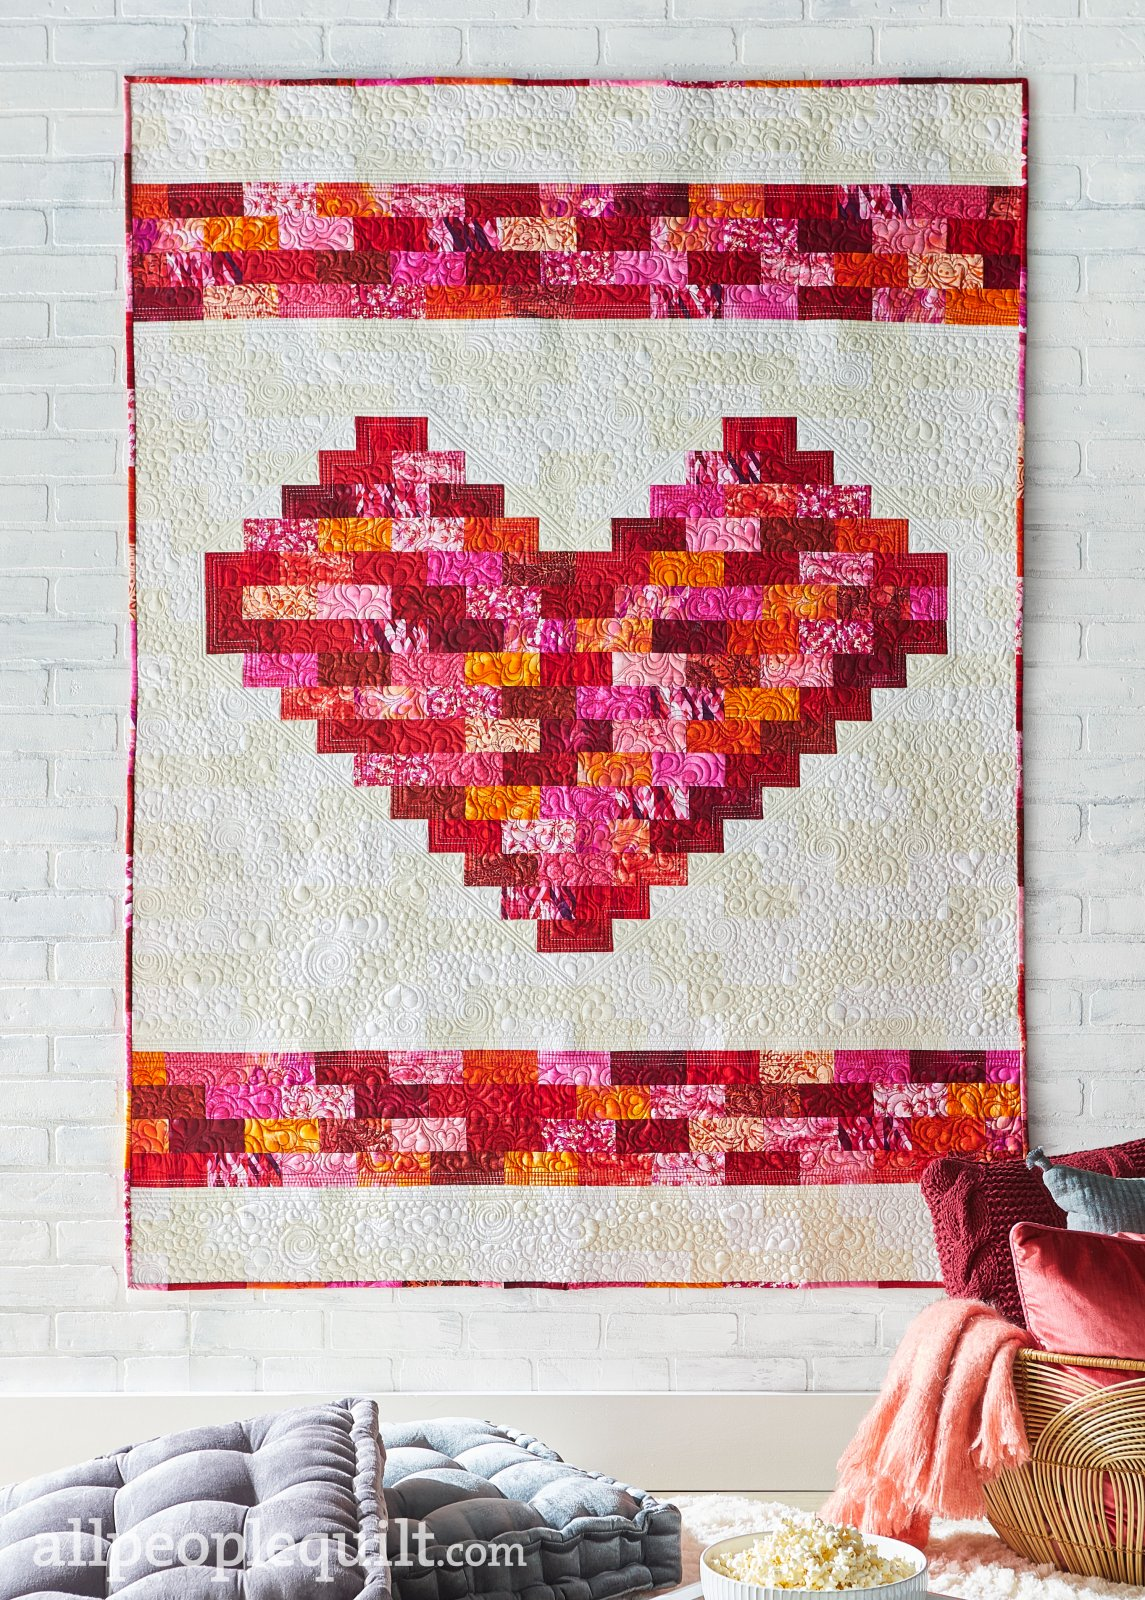 Kit 1048 Built On Love Quilt Sampler Magazine Quilt Kit